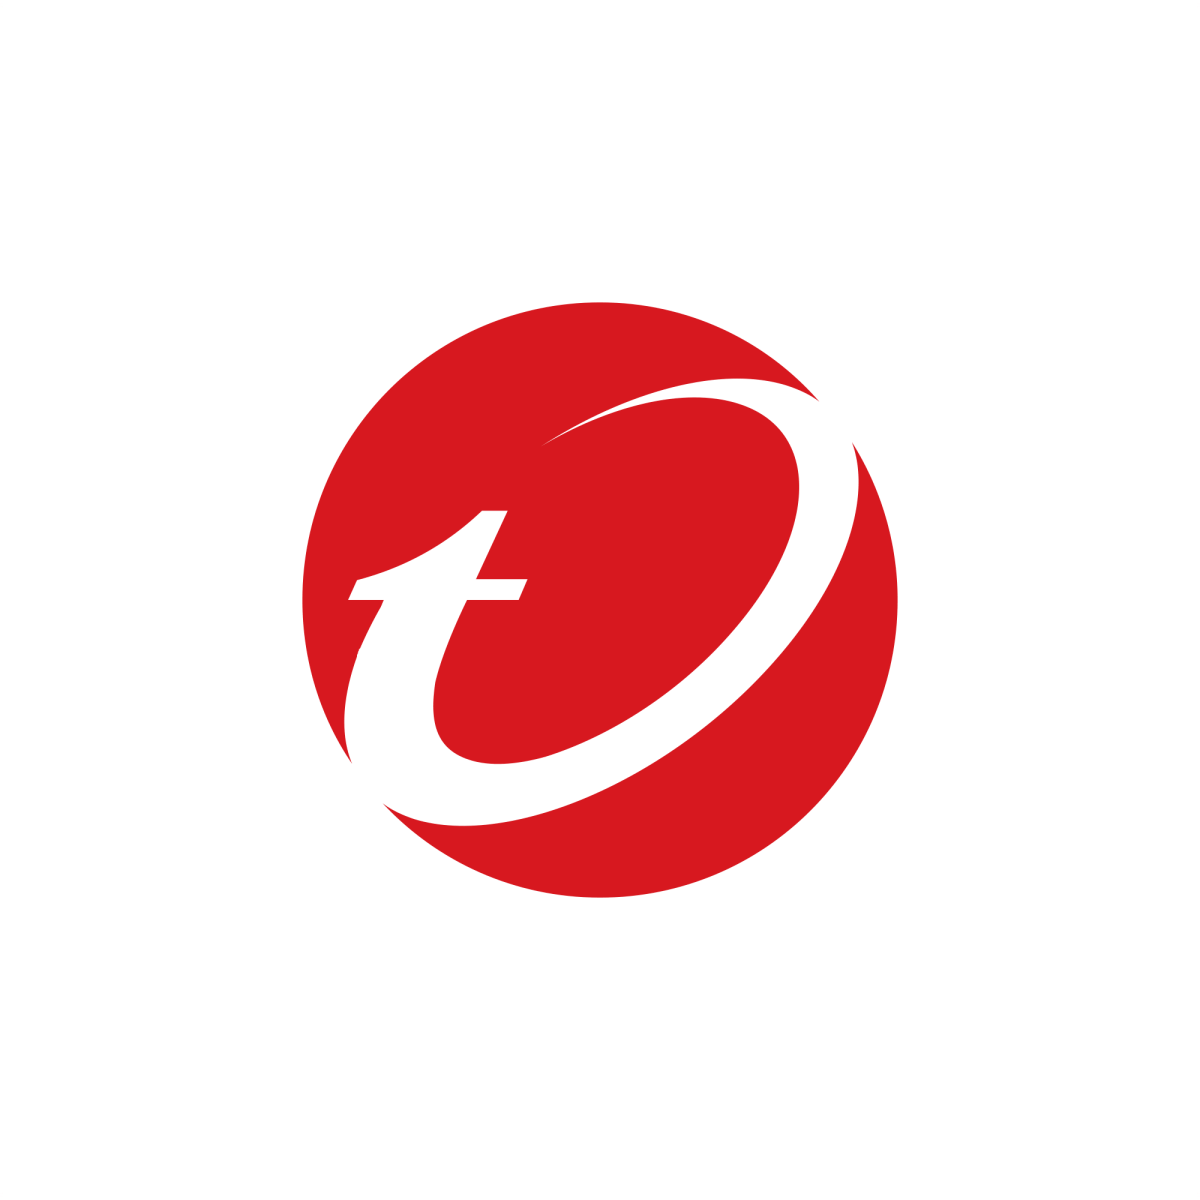 Trend Micro Logo Germany Trend Micro Letter T Lettering